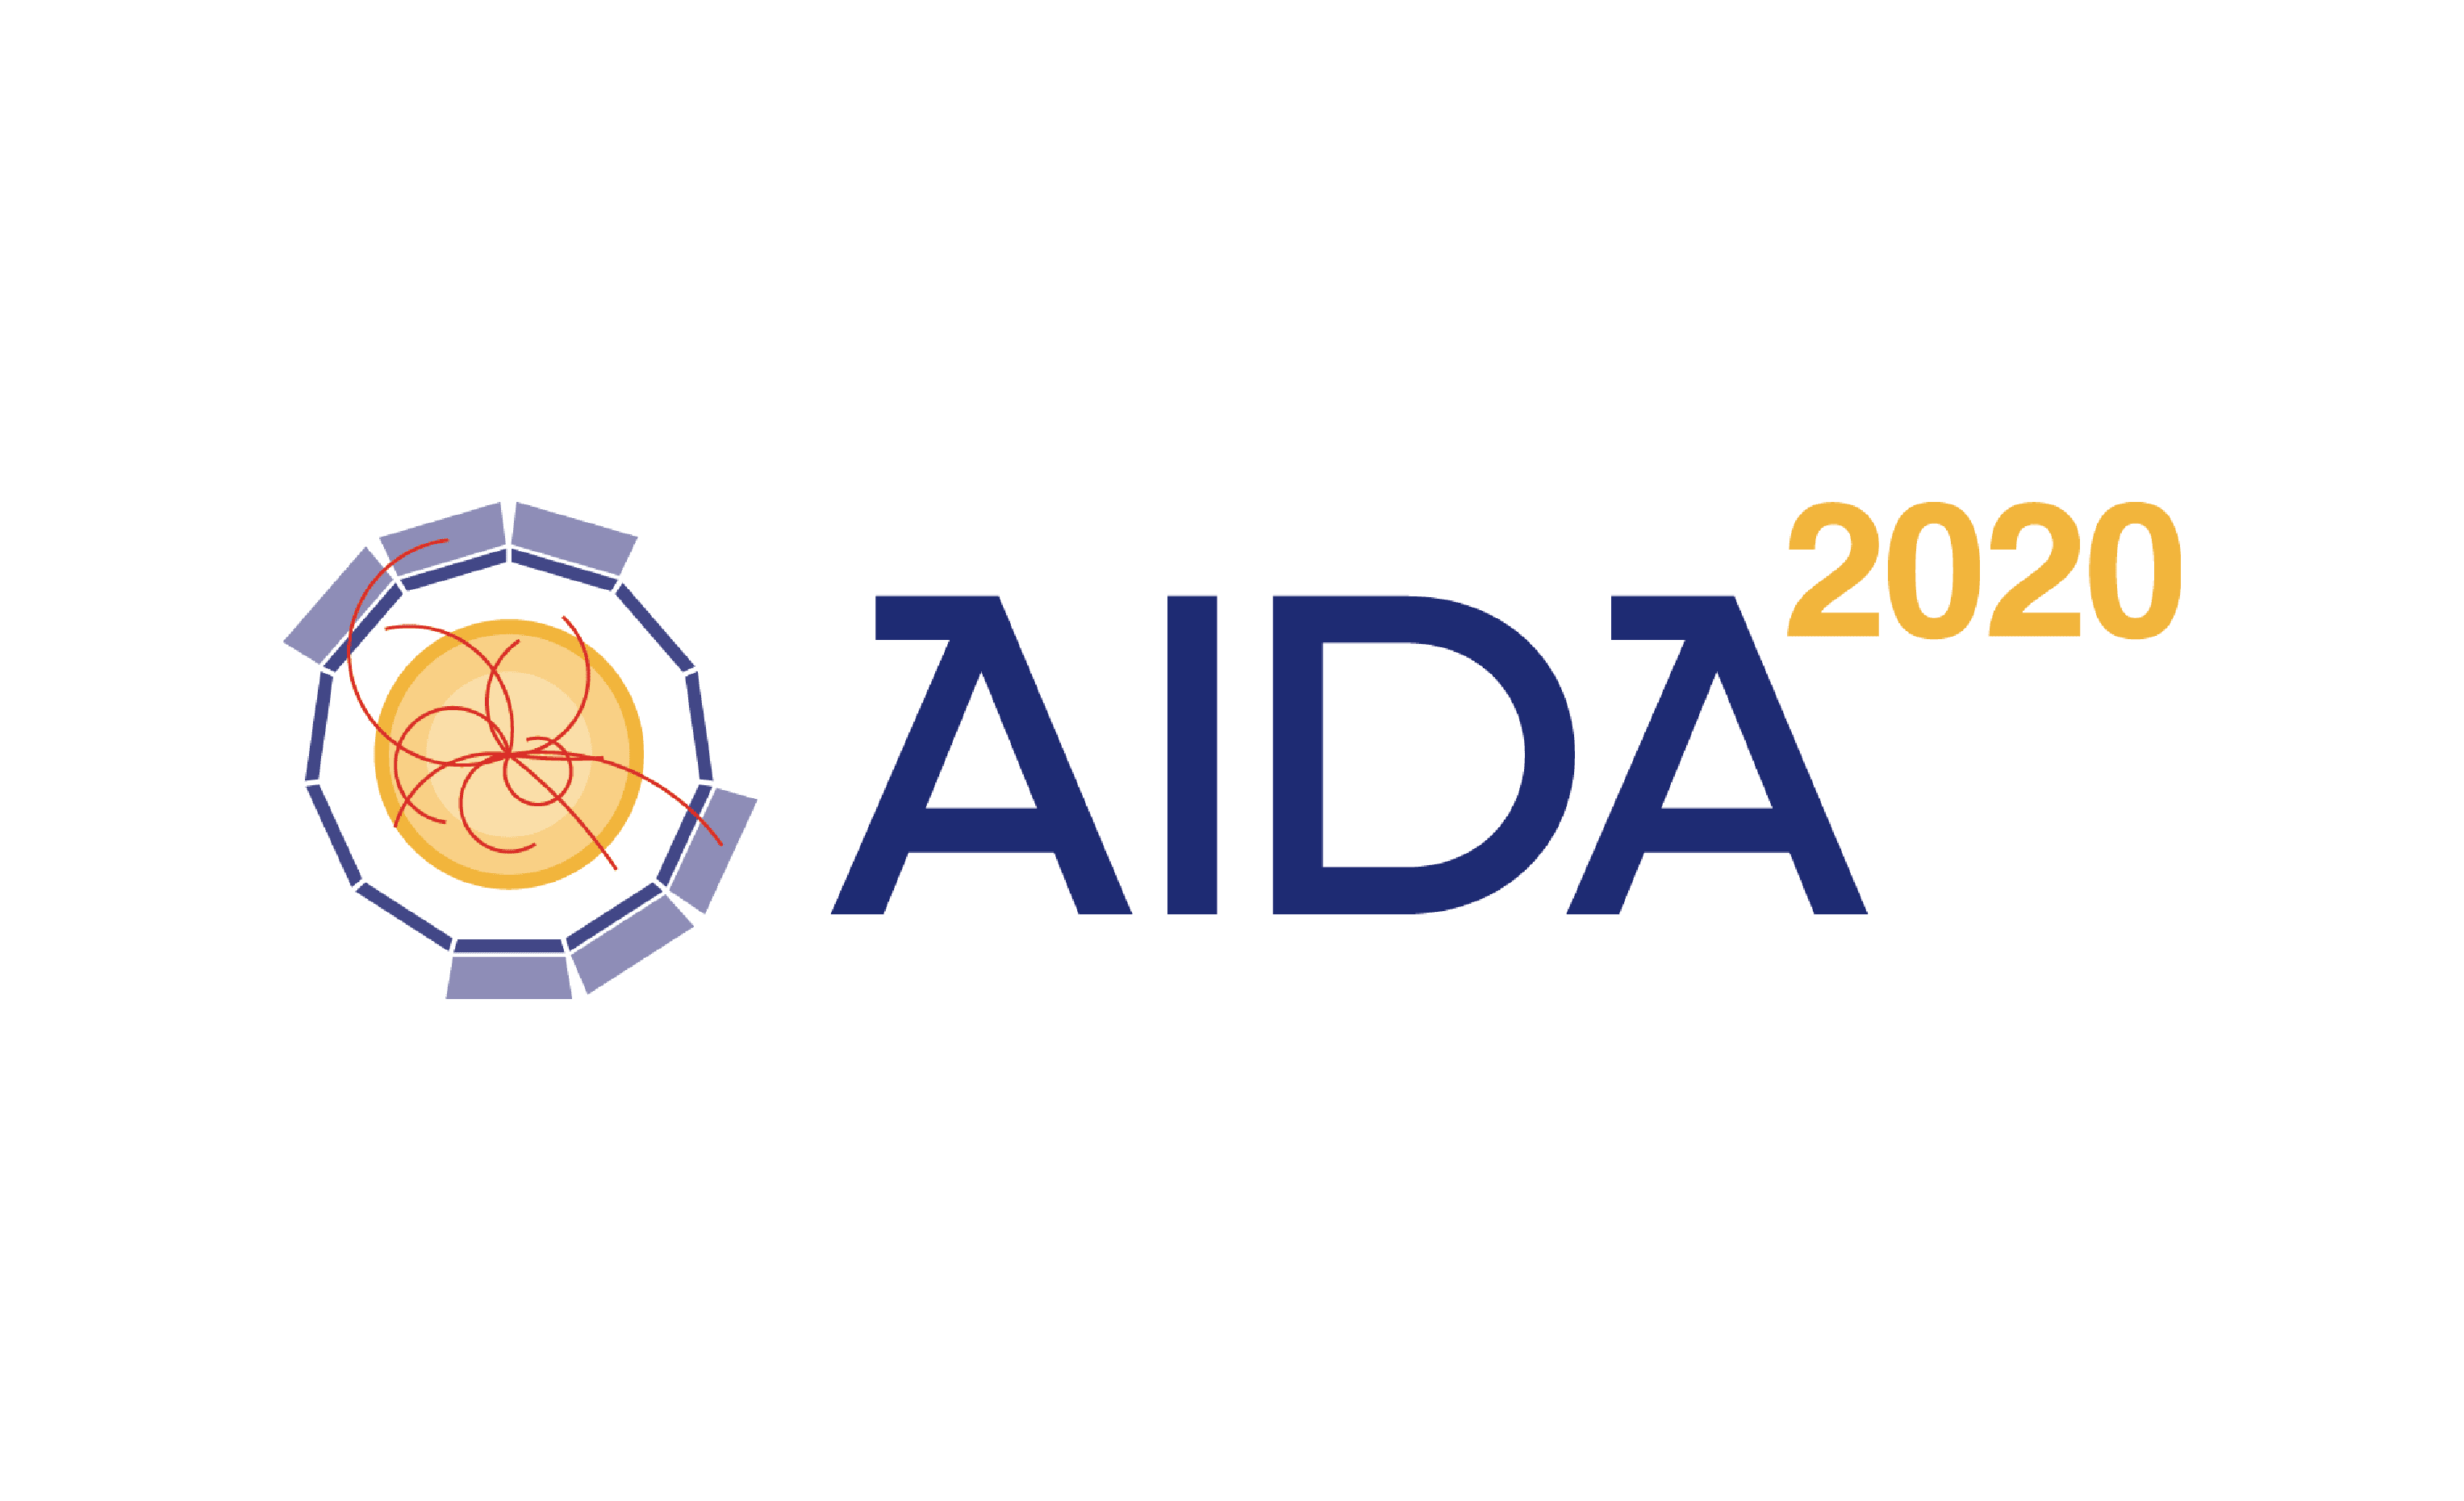 FYLA will participate in AIDA 2020